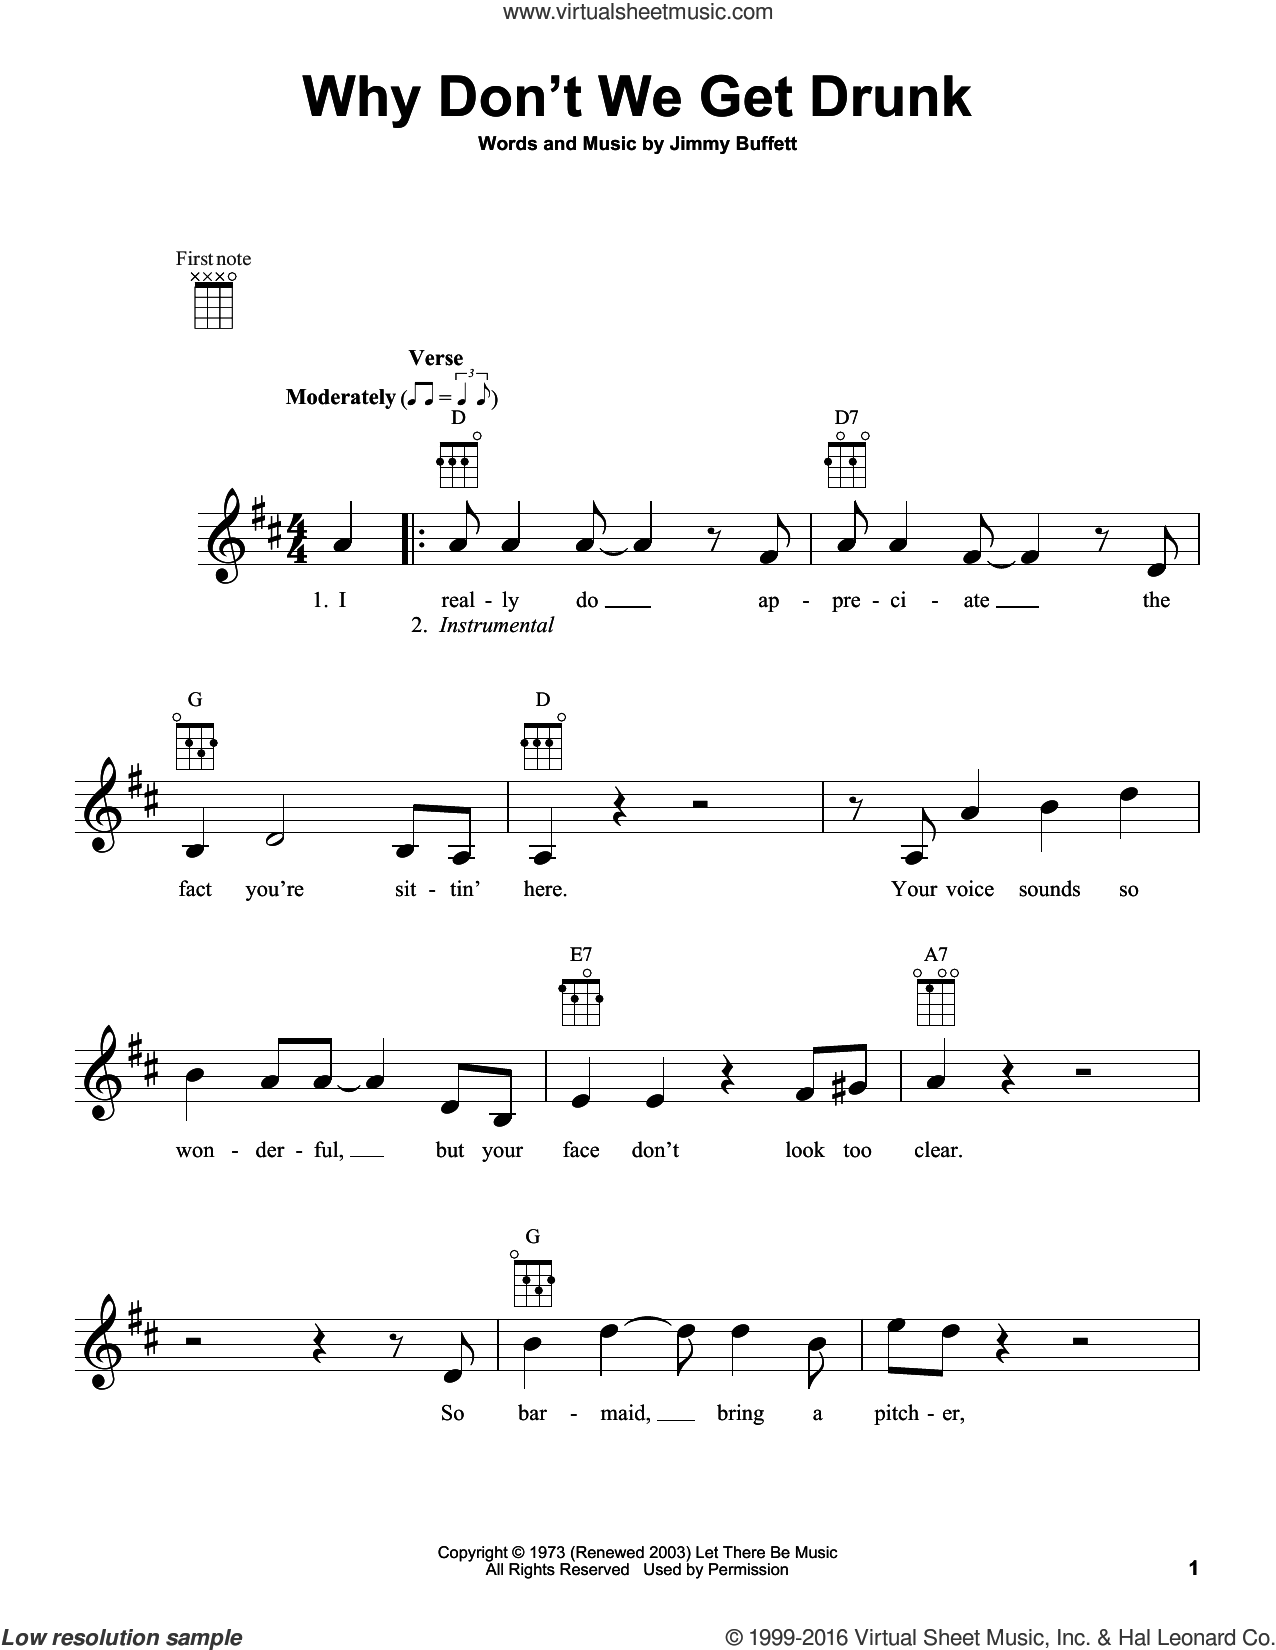 Why Don't We Get Drunk sheet music for ukulele by Jimmy Buffett. Score Image Preview.